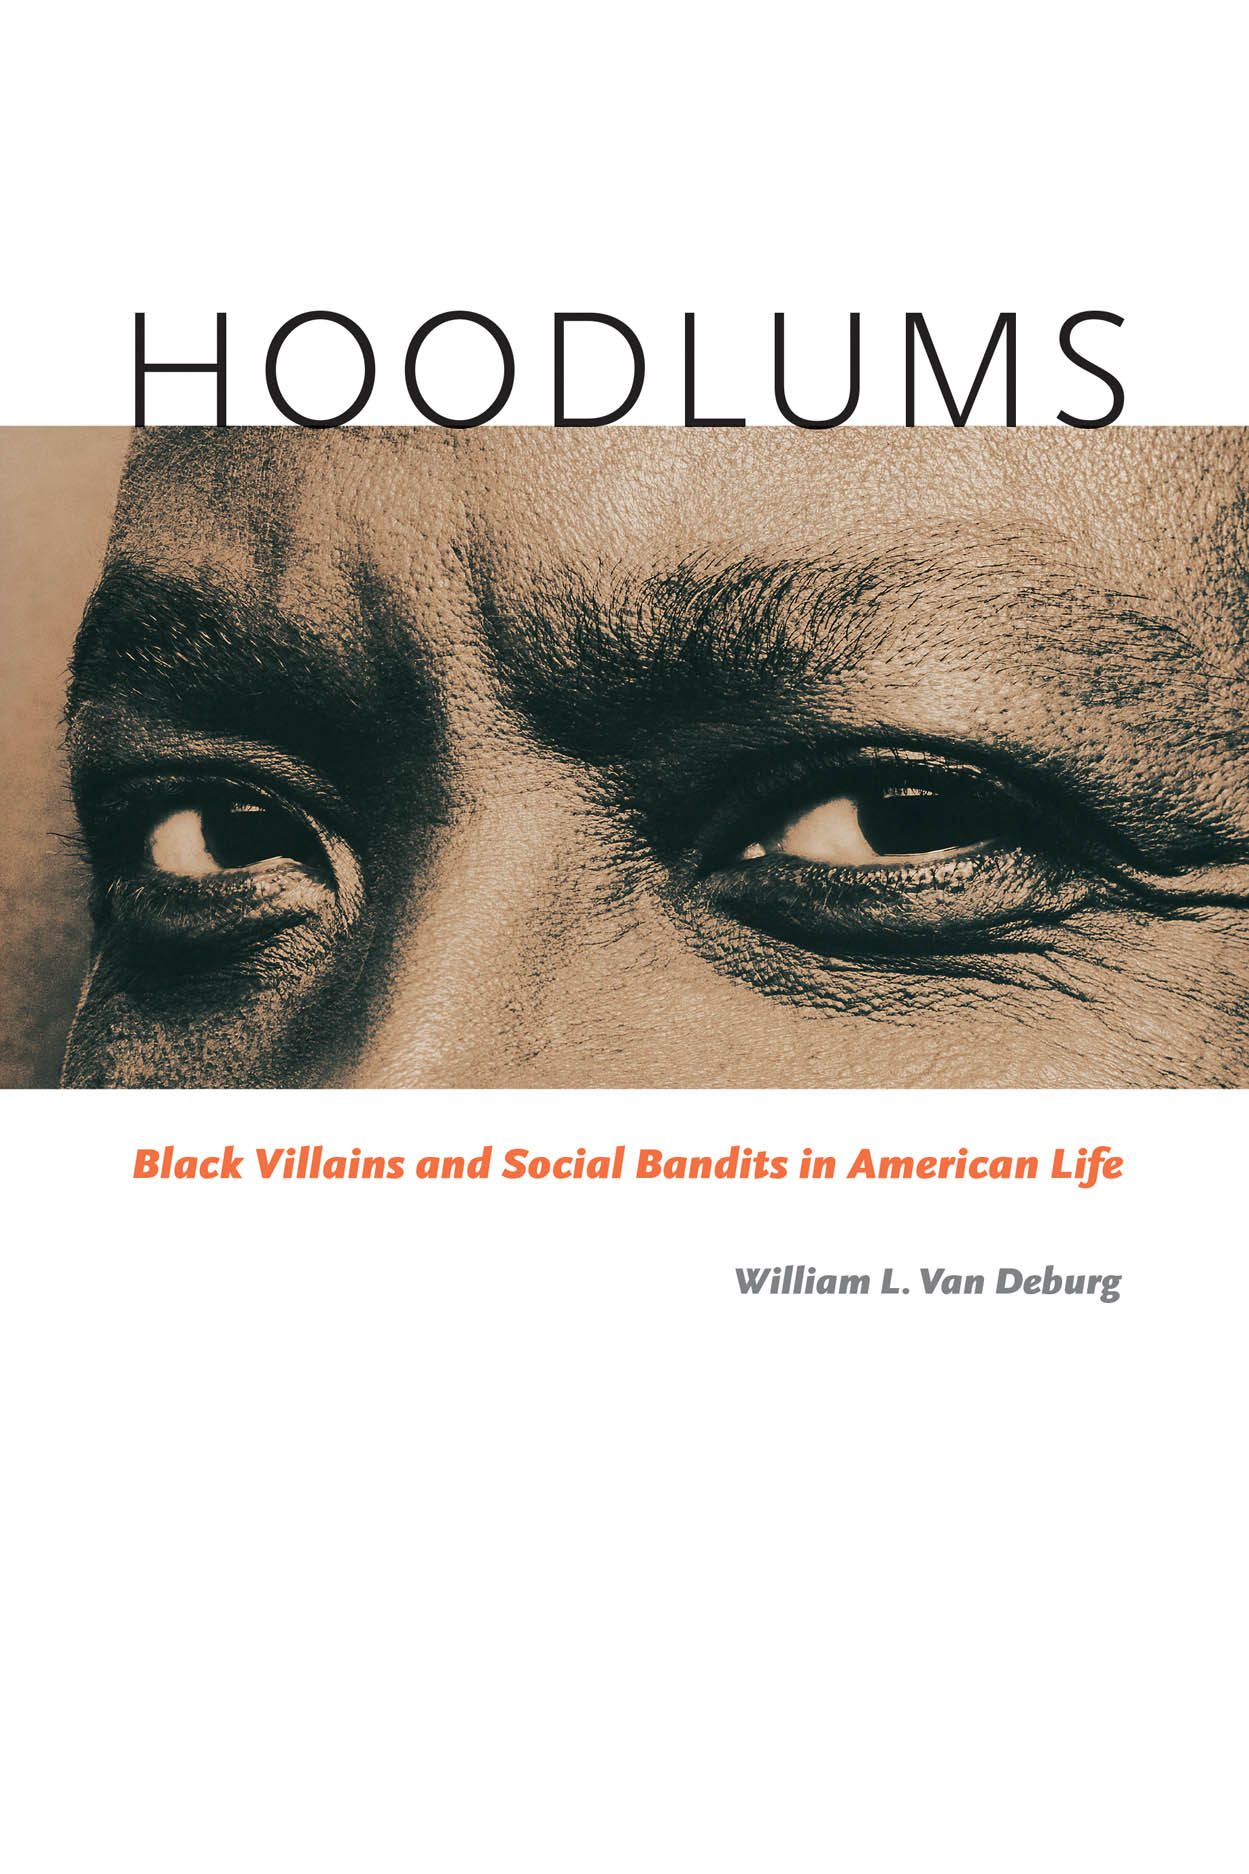 Hoodlums: Black Villains and Social Bandits in American Life